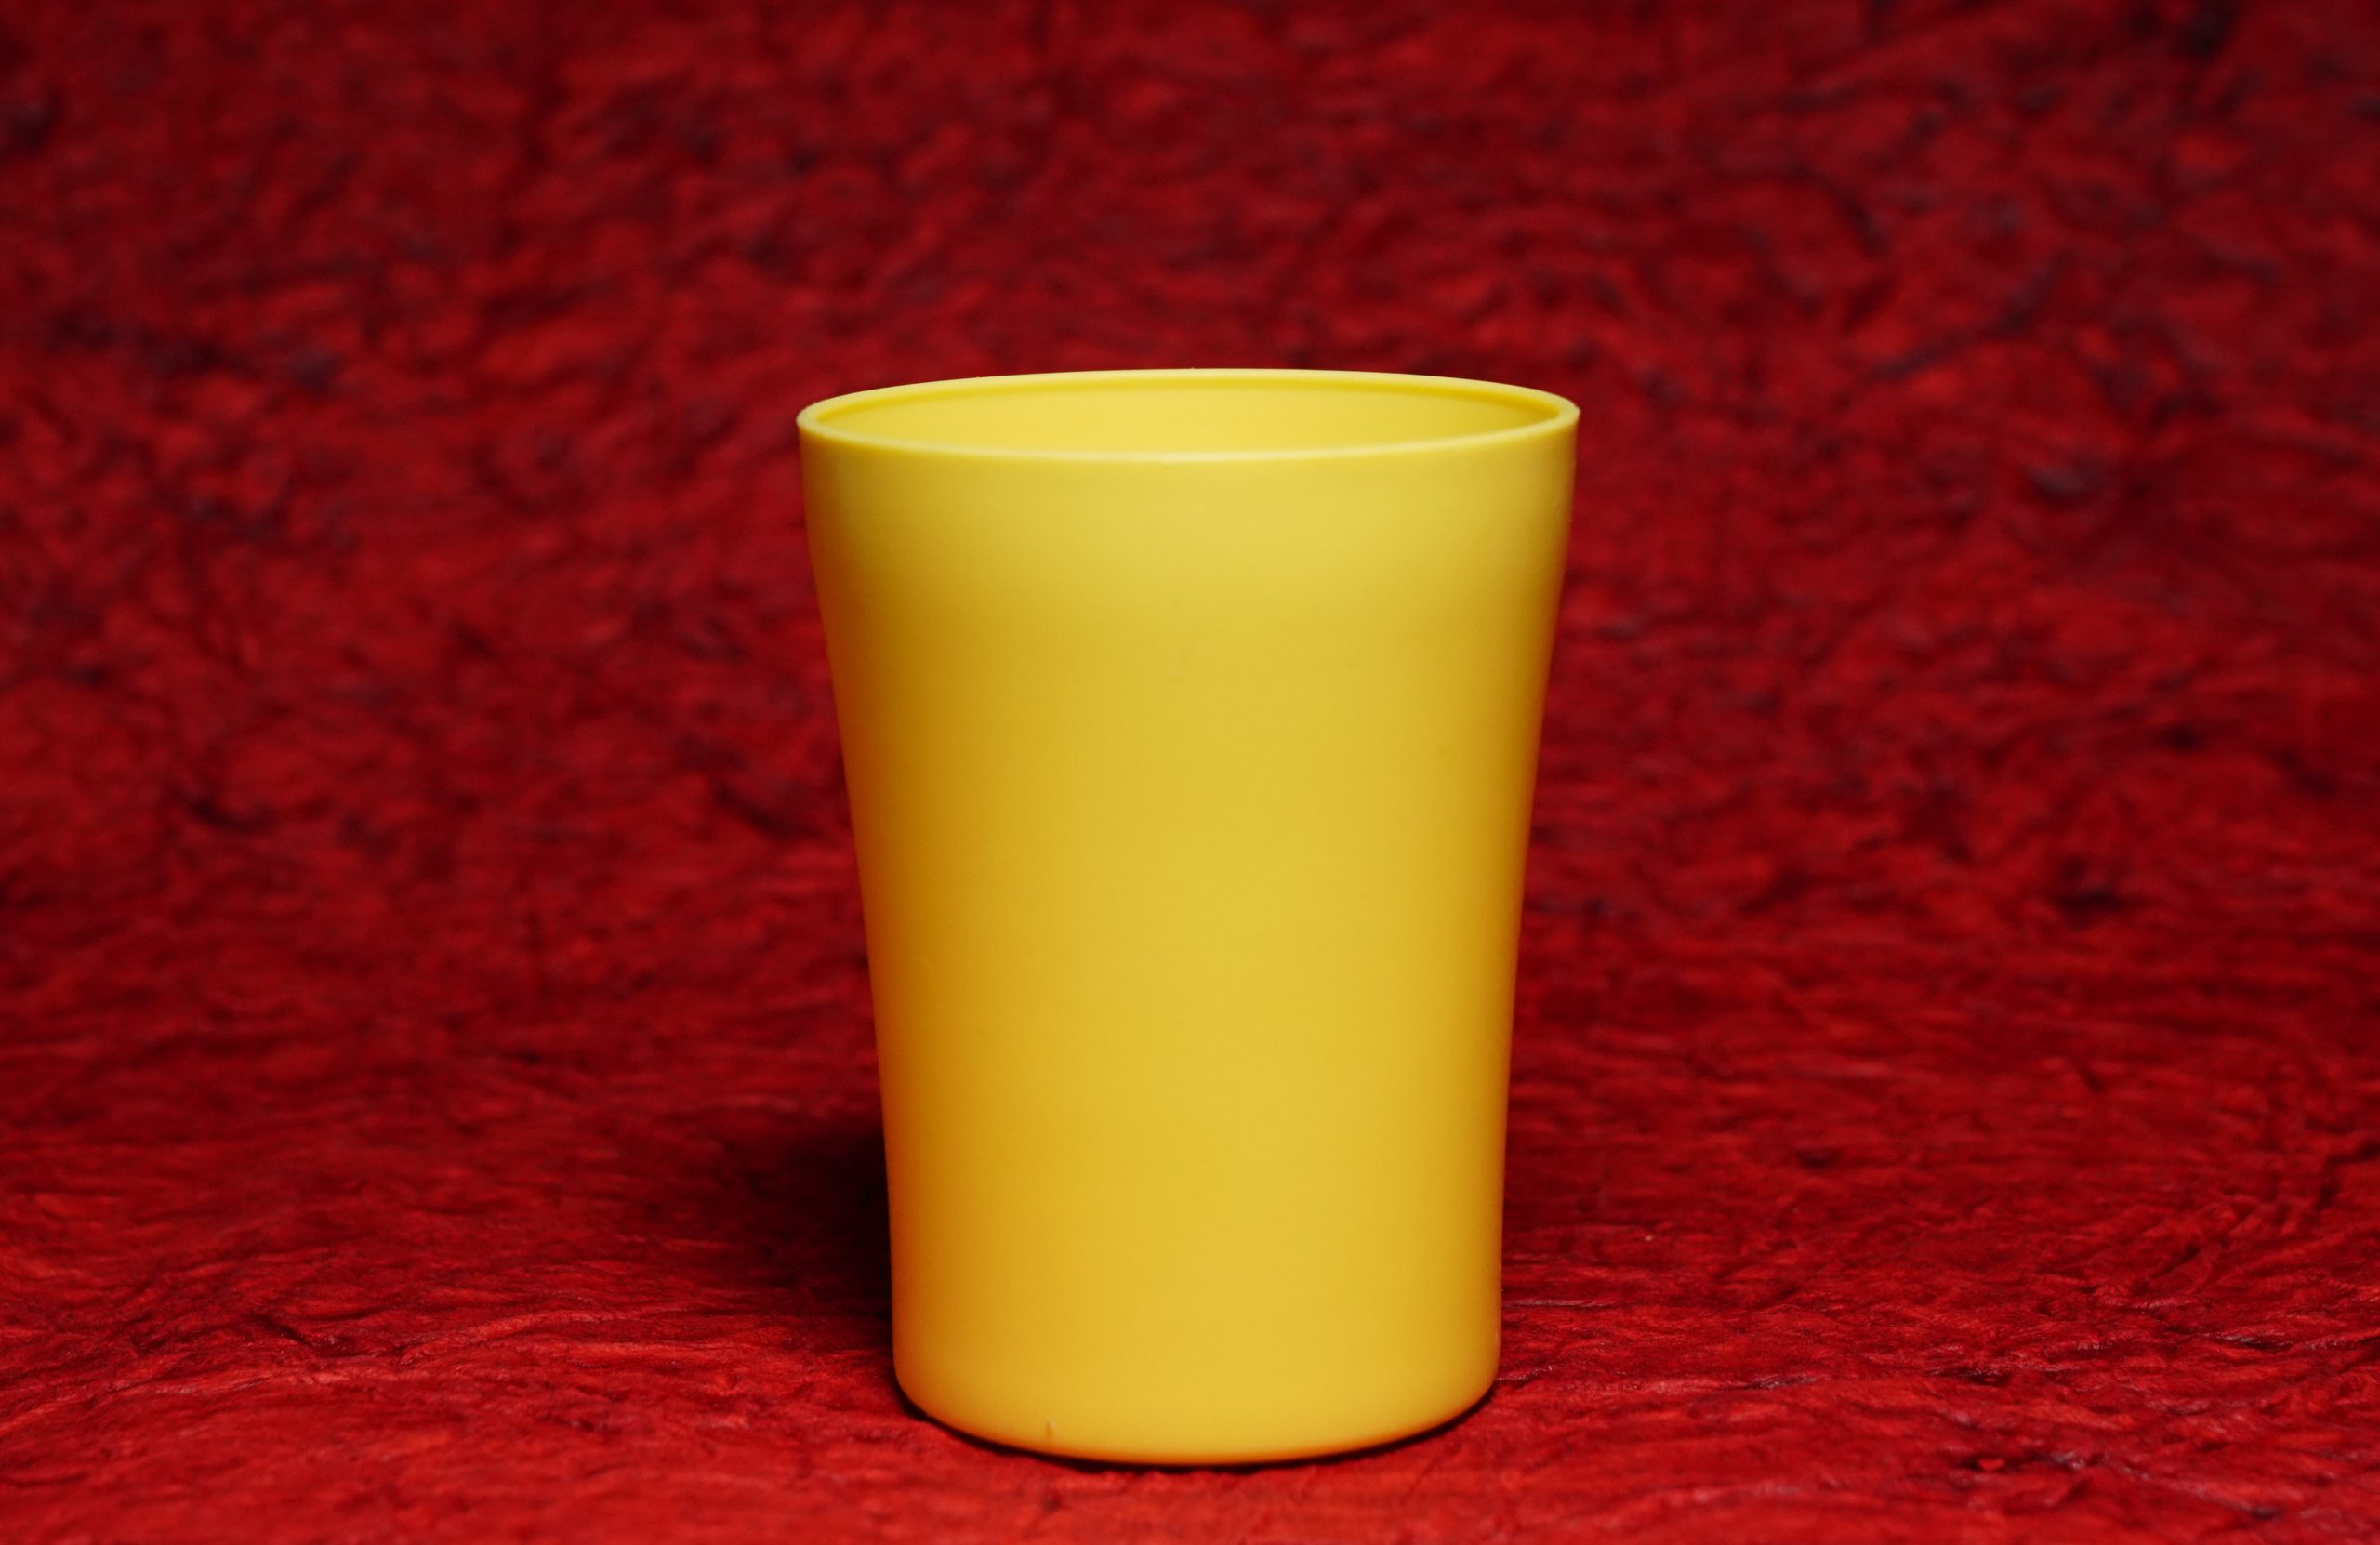 A yellow tumbler in red background